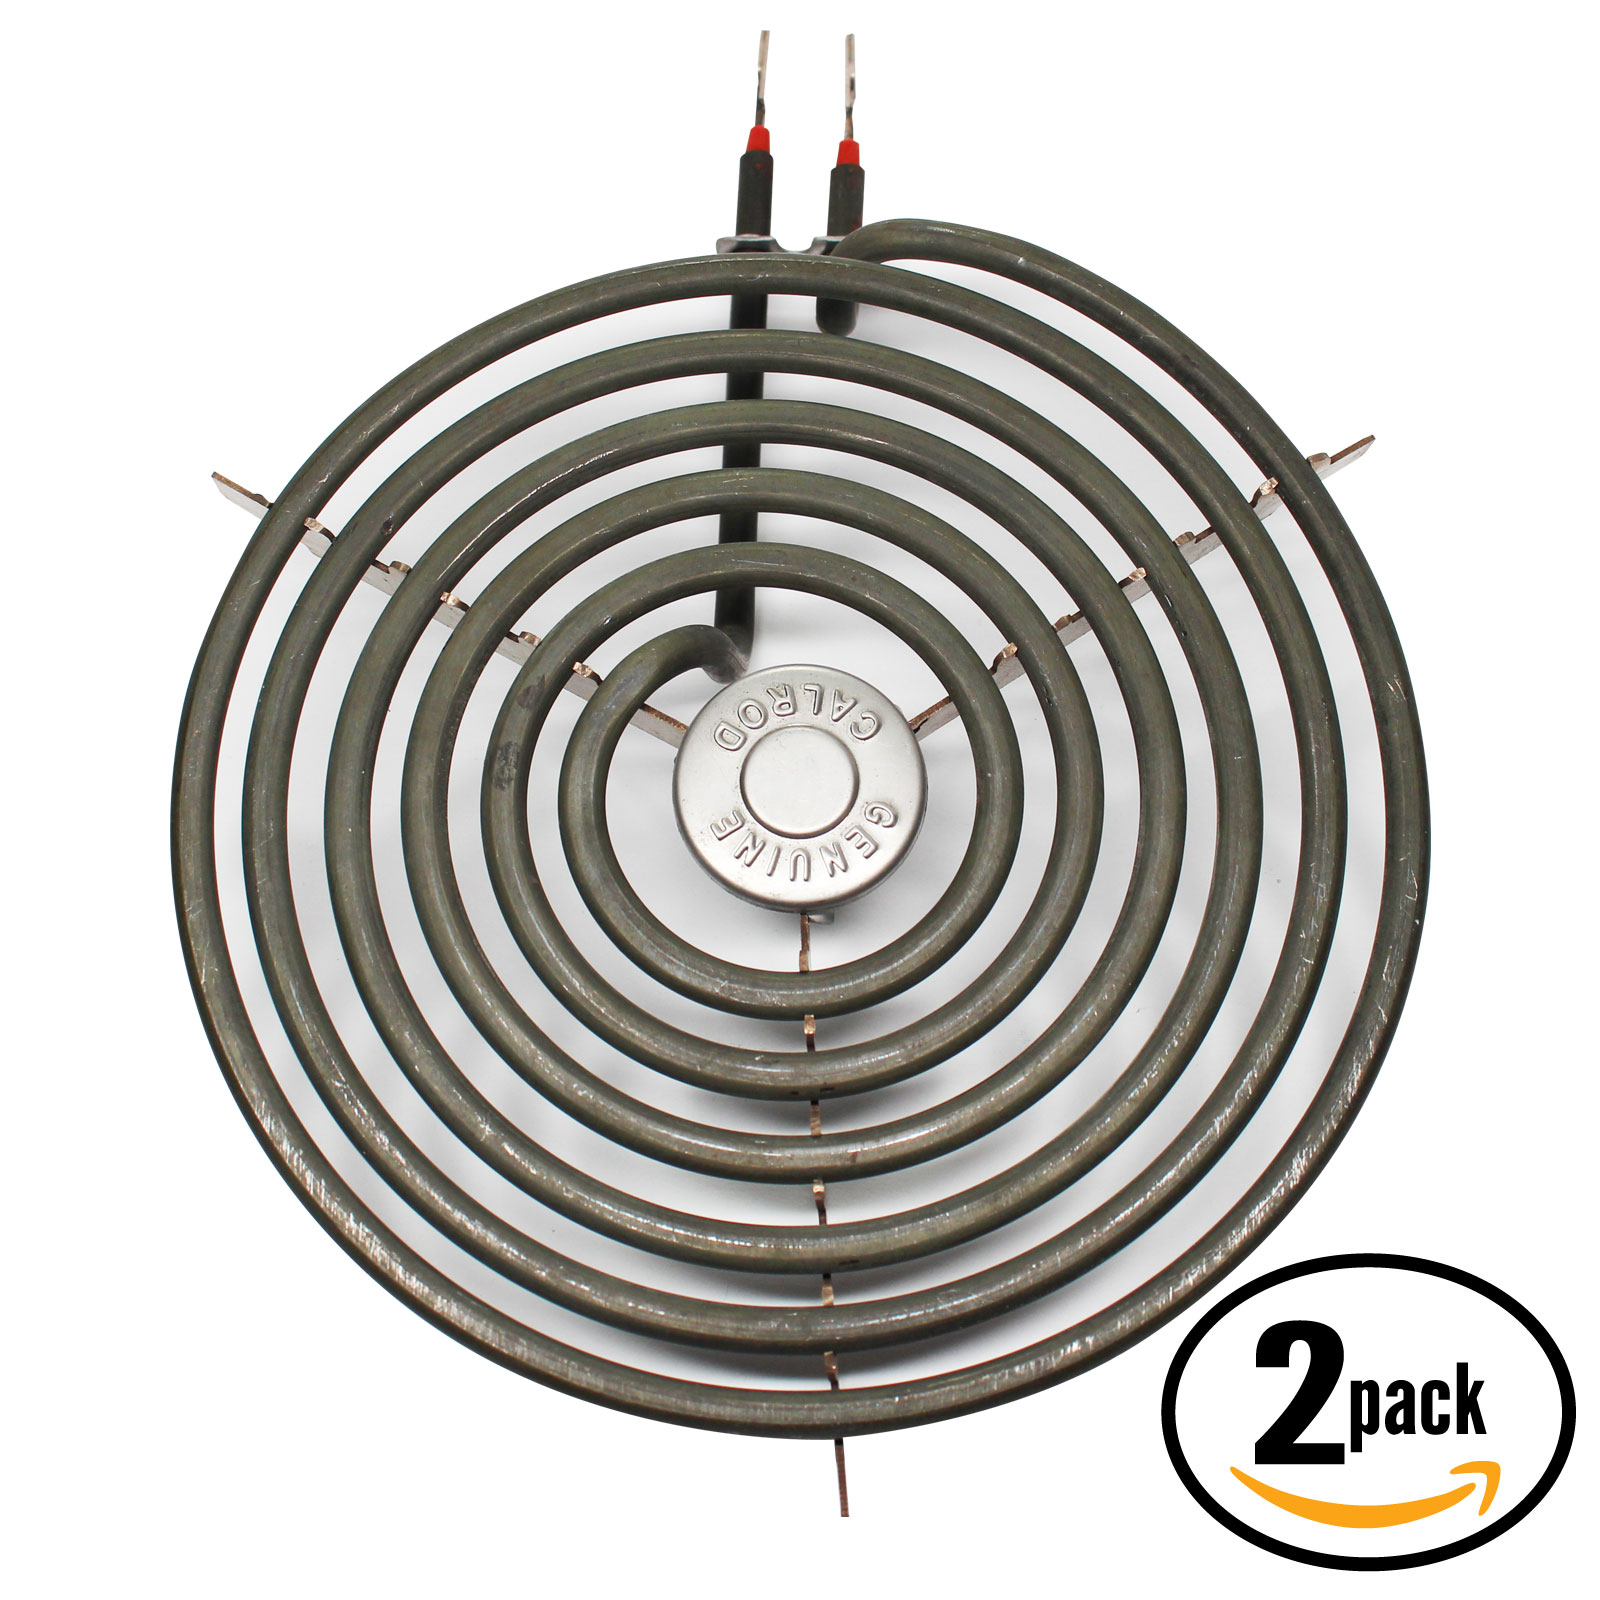 2-Pack Compatible General Electric LEB116GT1WH 8 inch 6 Turns Surface Burner Element - Compatible General Electric WB30M2 Heating Element for Range, Stove & Cooktop